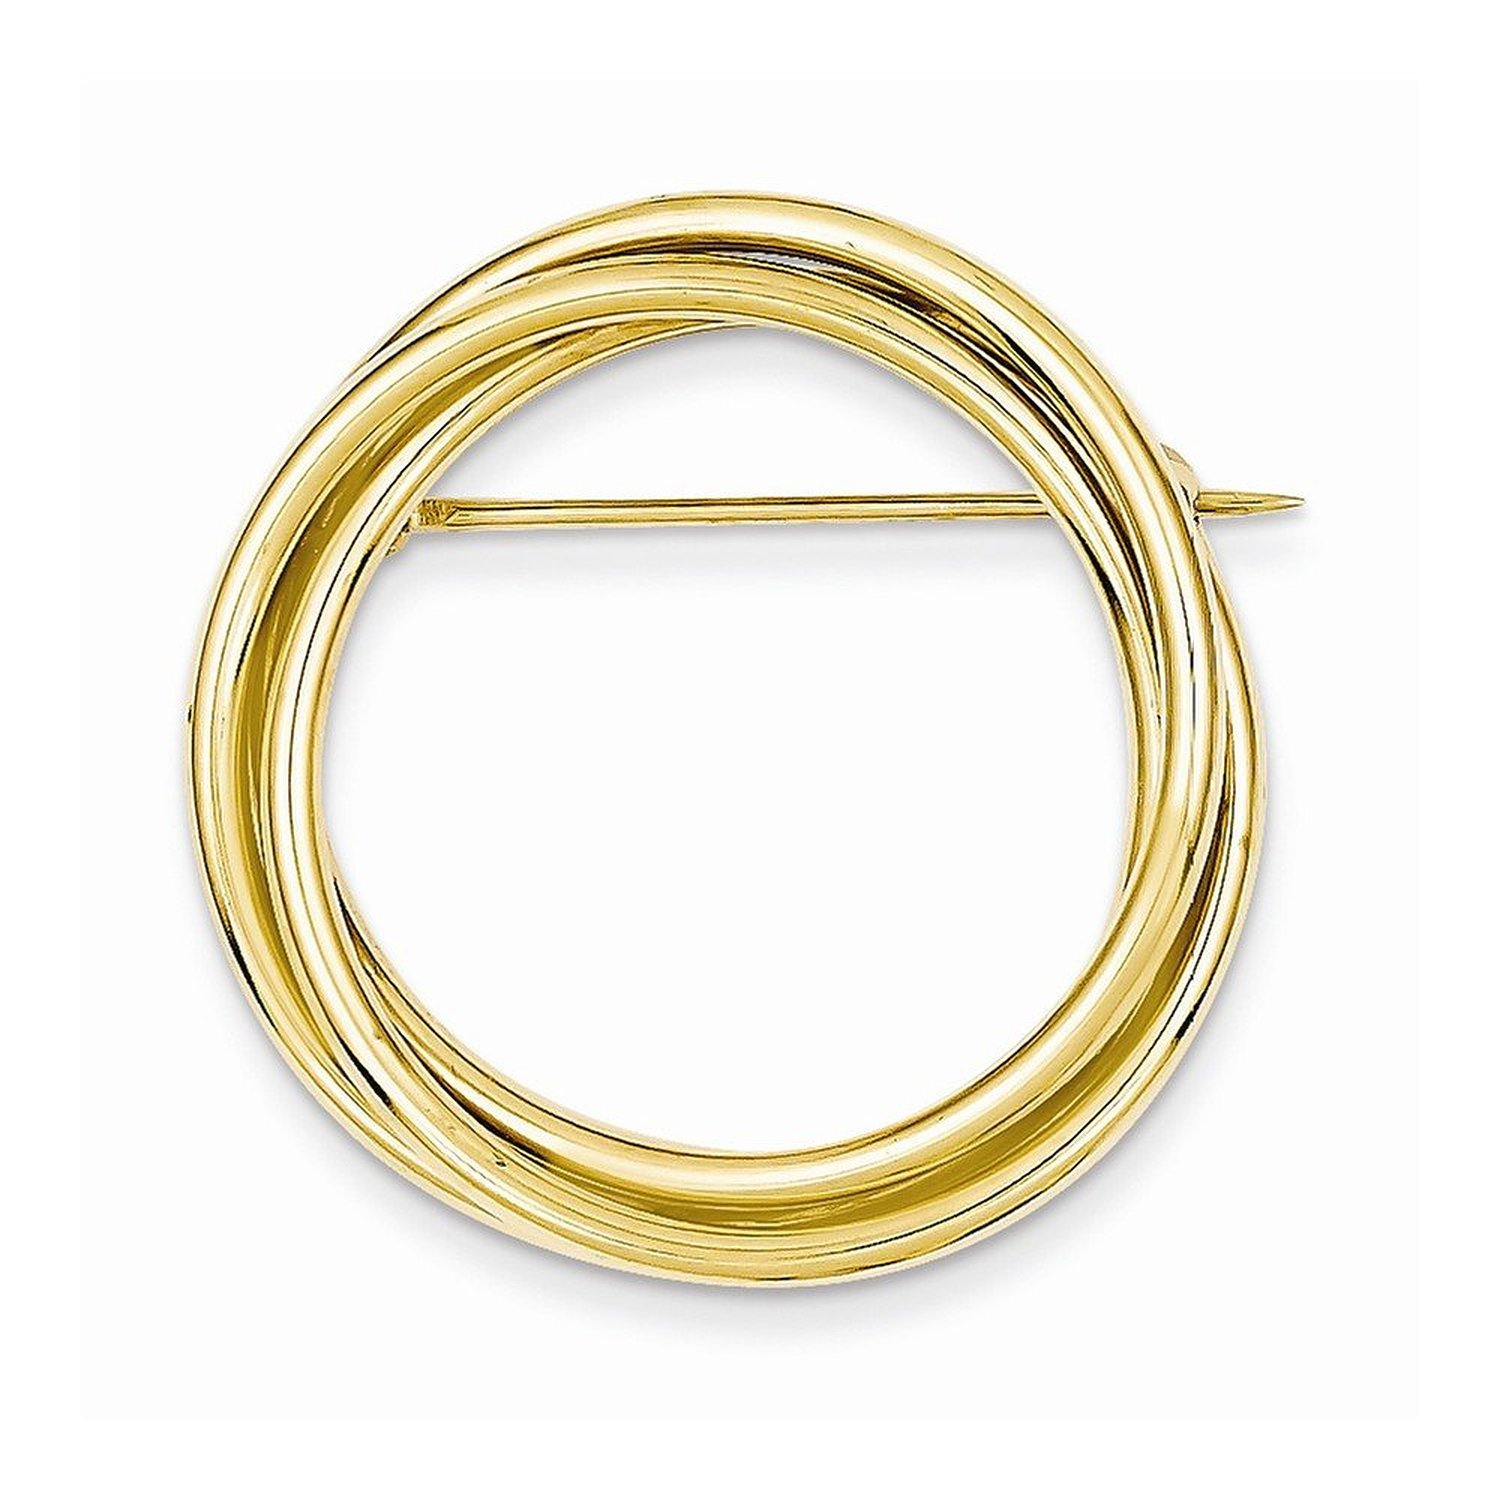 14k Yellow Gold Round Circle Fancy Pin Brooch 32mm x 32mm